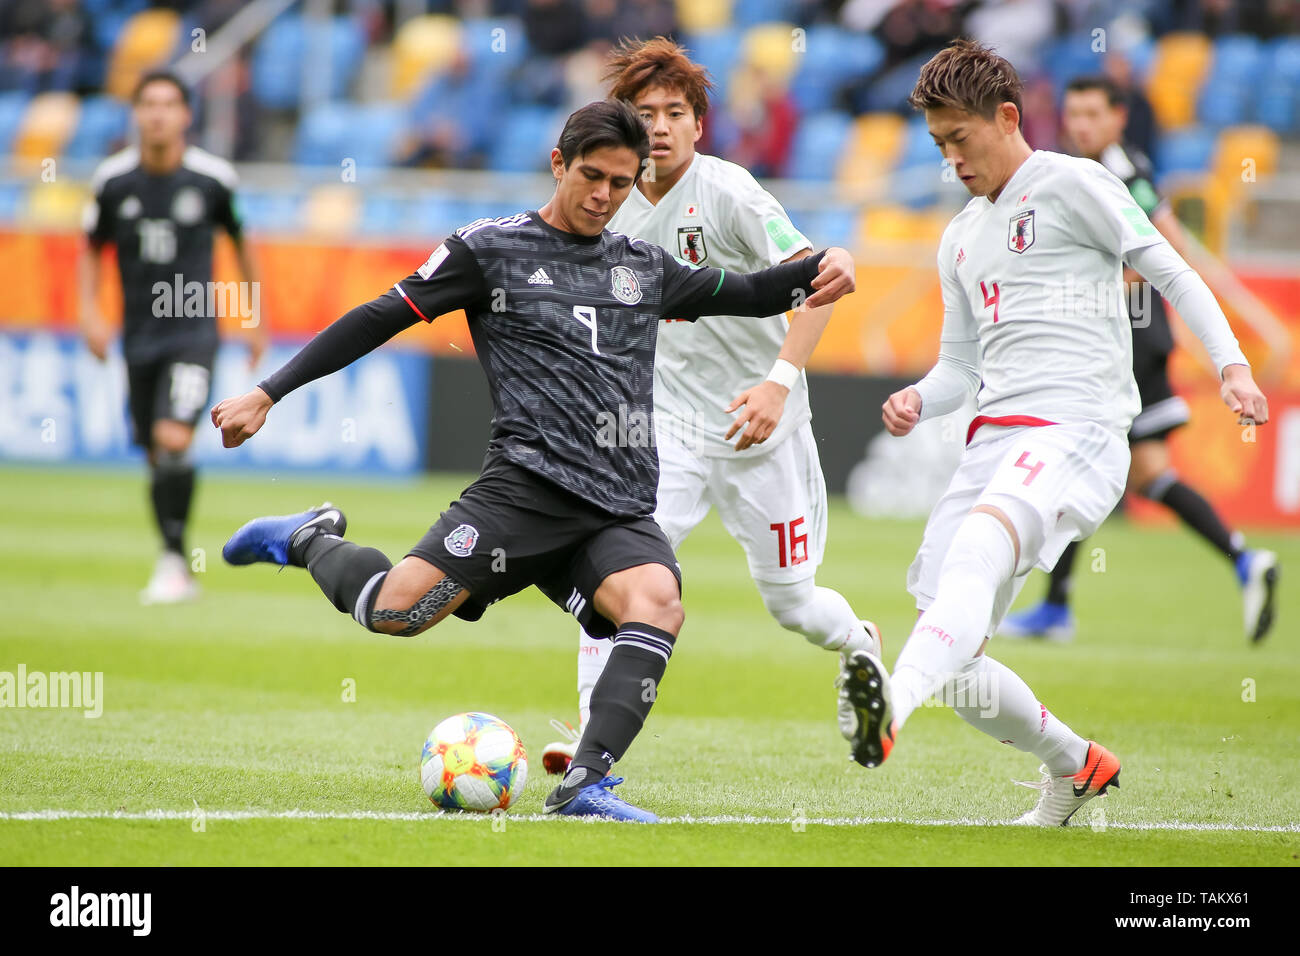 Gdynia Stadium, Gdynia, Poland - 26th May, 2019: Jose Macias (L) from Mexico and Kota Yamada (C), Ayumu Seko(R) from Japan seen in action during FIFA U-20 World Cup match between Mexico and Japan (GROUP B) in Gdynia. (Final score; Mexico 0:3 Japan) - Stock Image